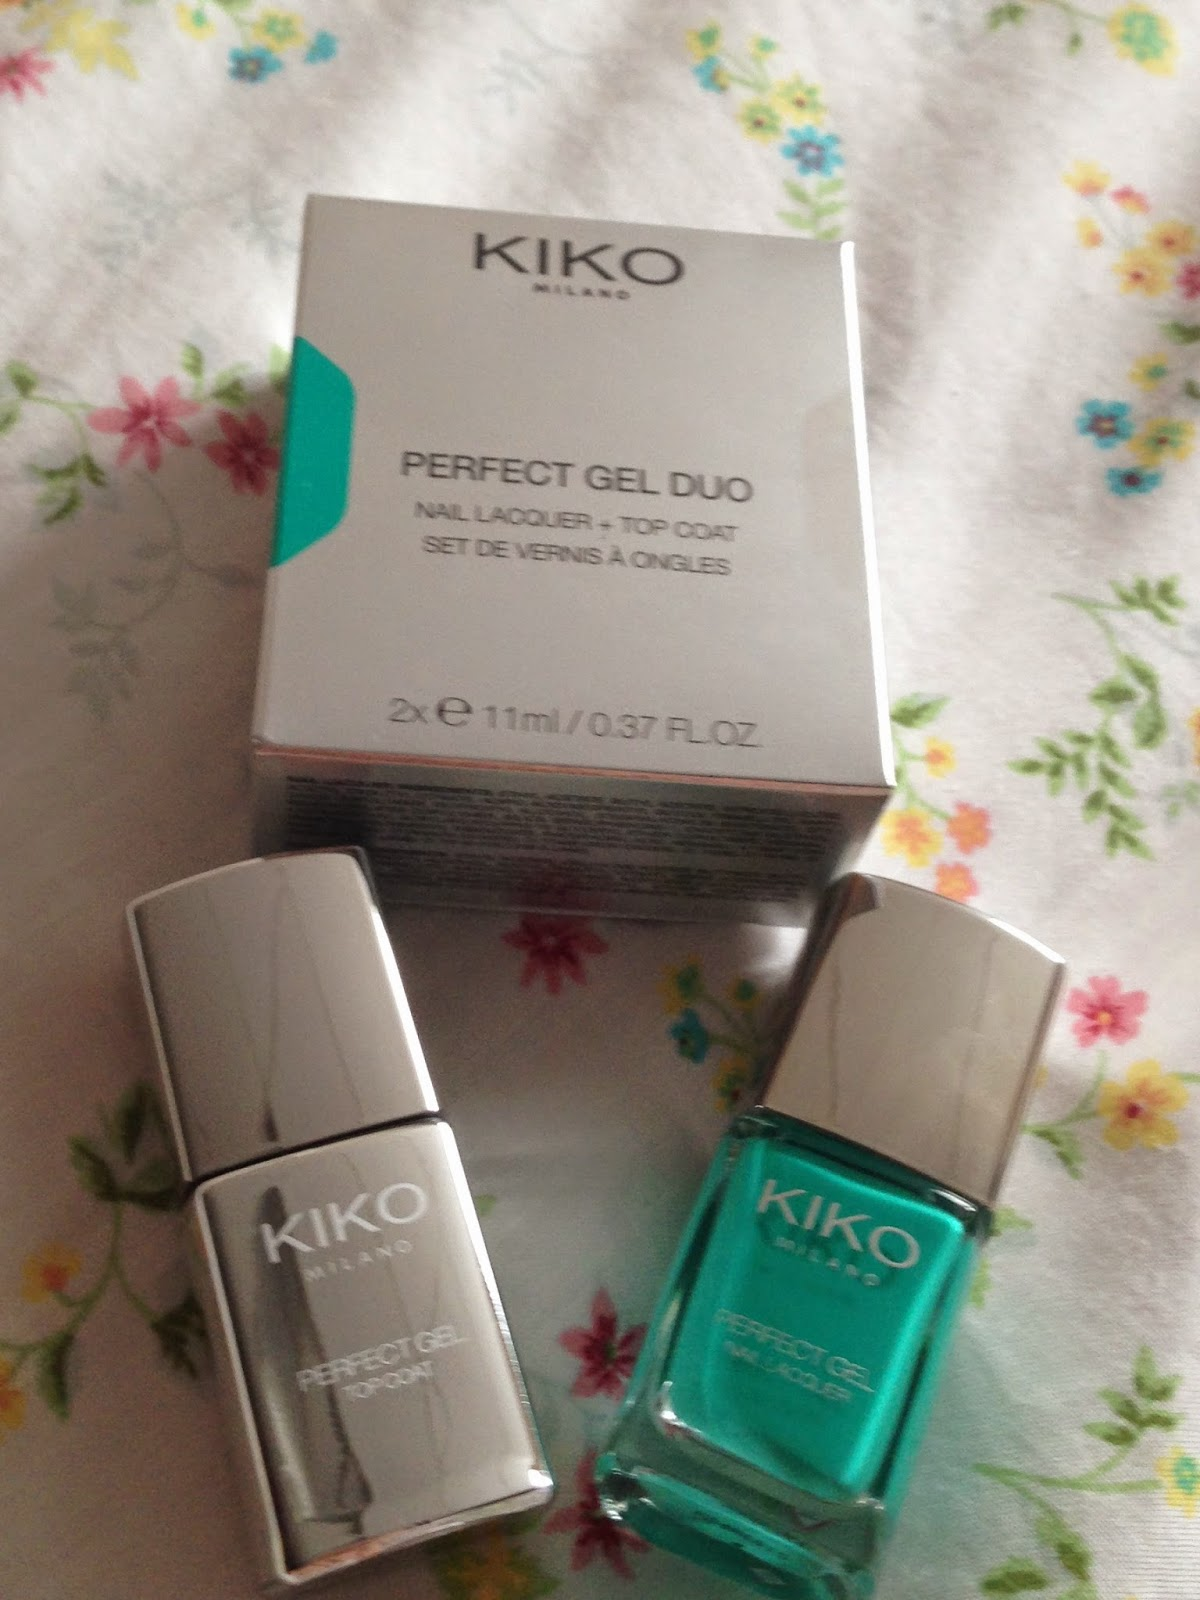 Vernis Spring Green de chez Kiko de la collection Perfect Gel Duo